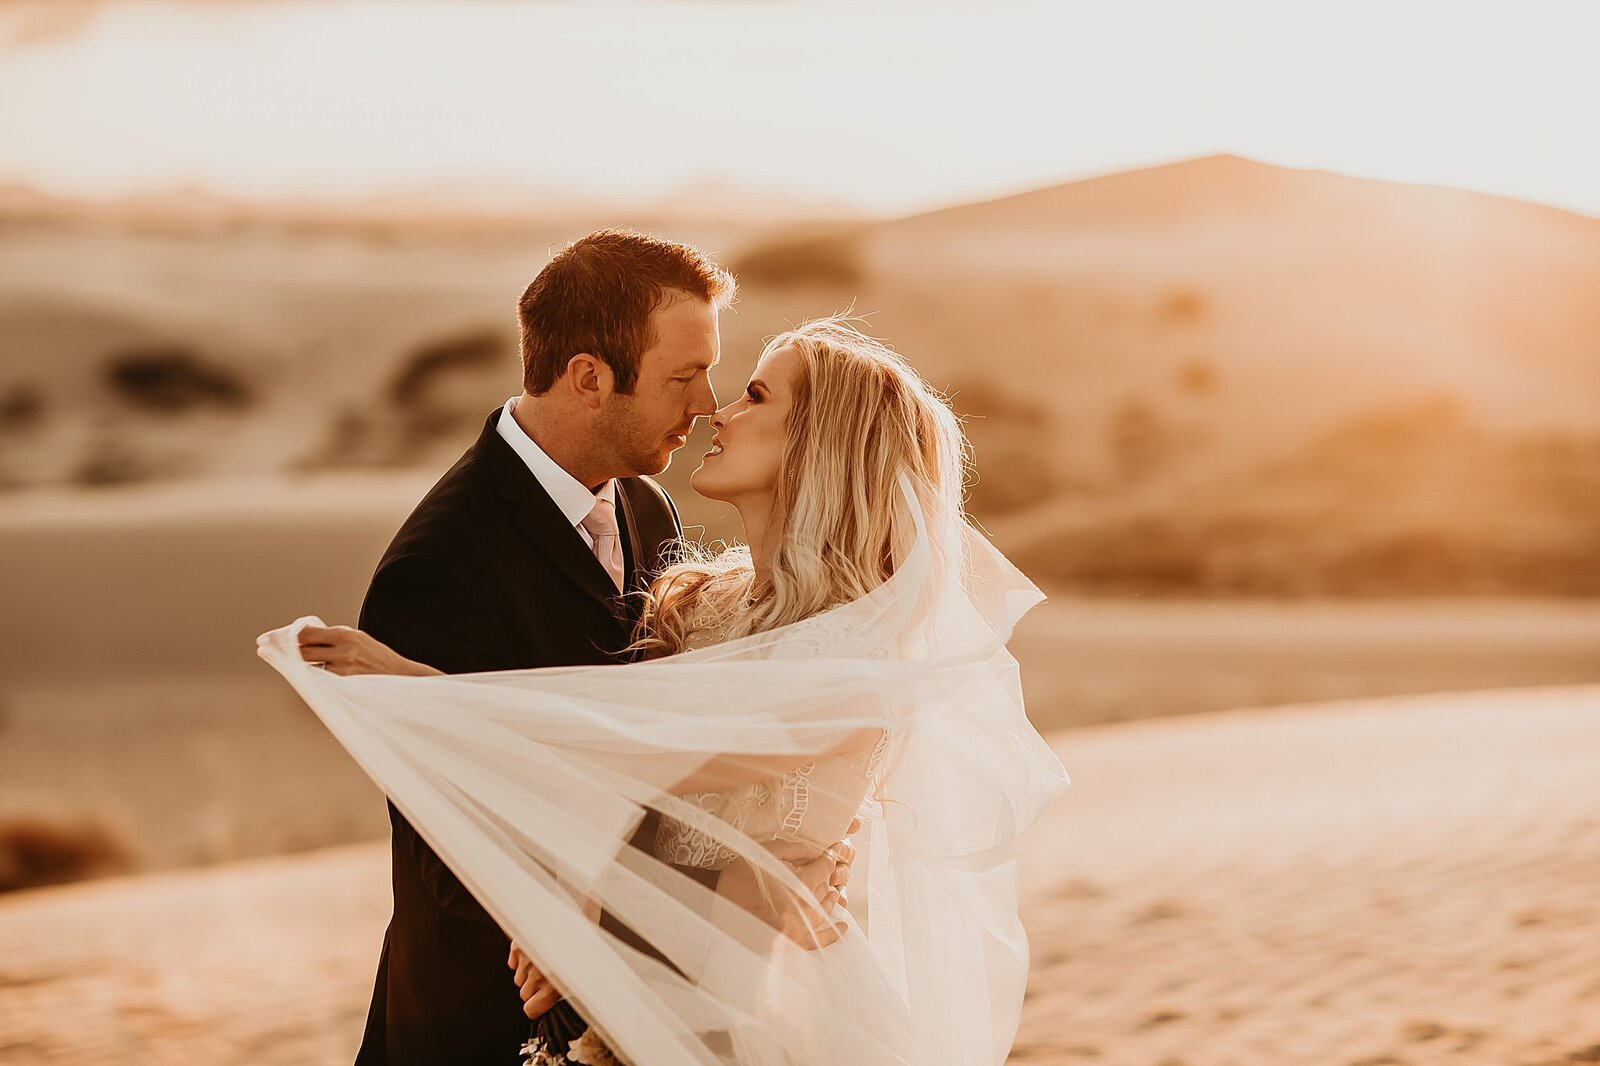 Bride and Groom Kissing in Warm Sun Outside